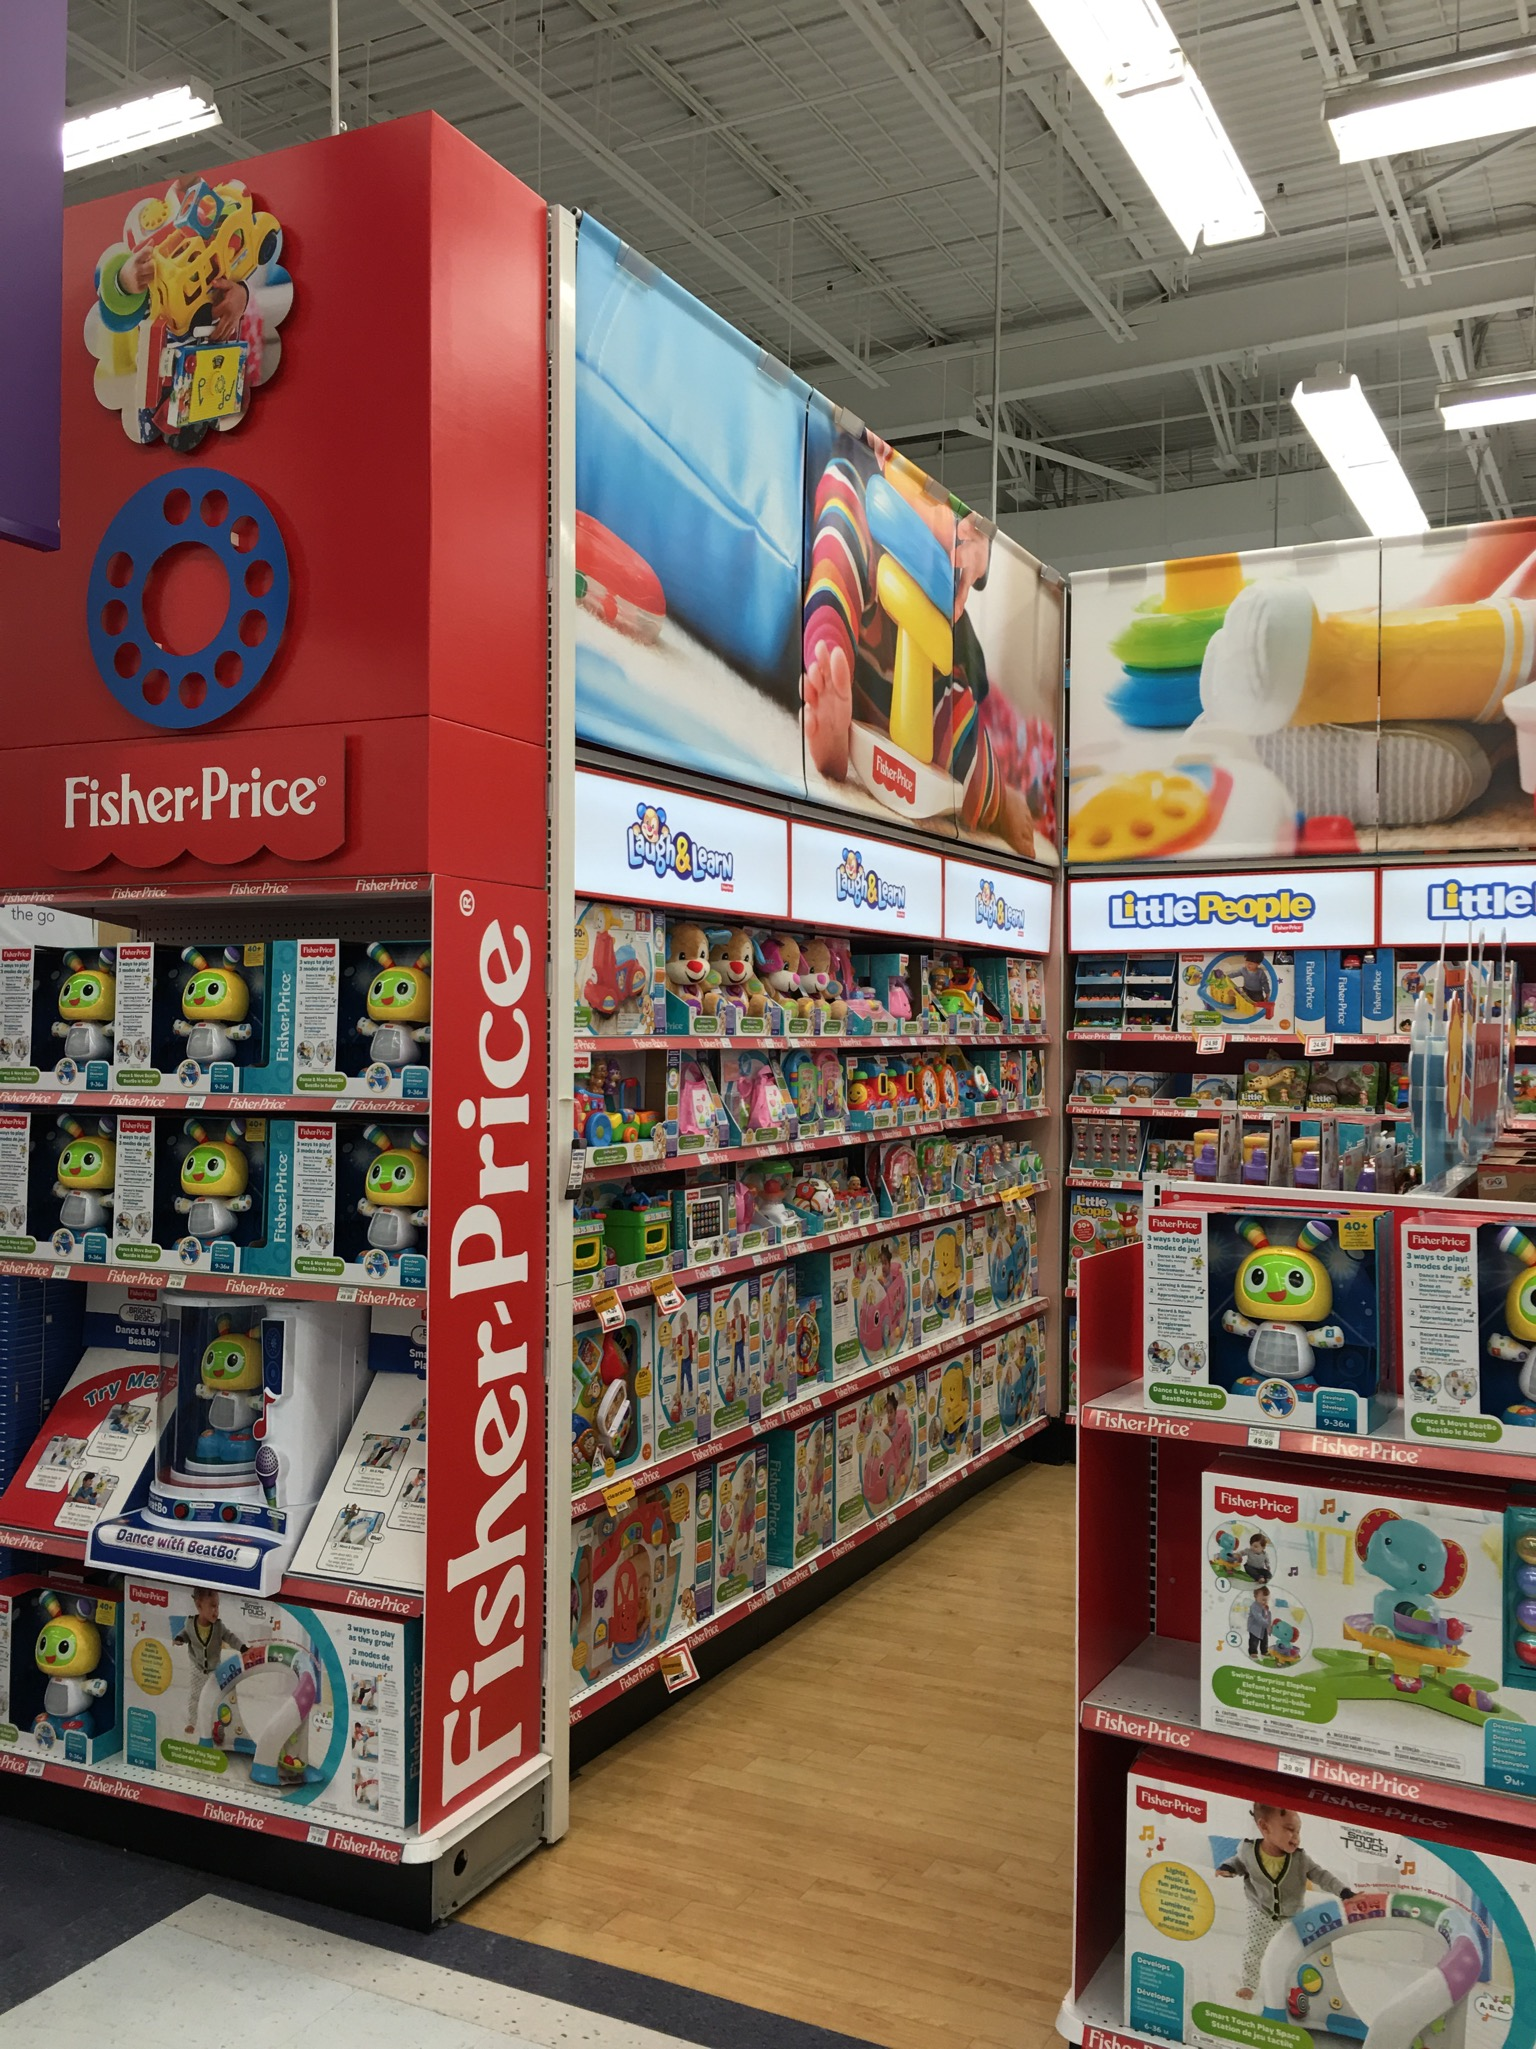 Search for fisher price store Preisvergleich, Testbericht und Kaufberatung95% Customer Satisfaction · Huge Selection · Free Shipping Offers · Enjoy Big Savings.